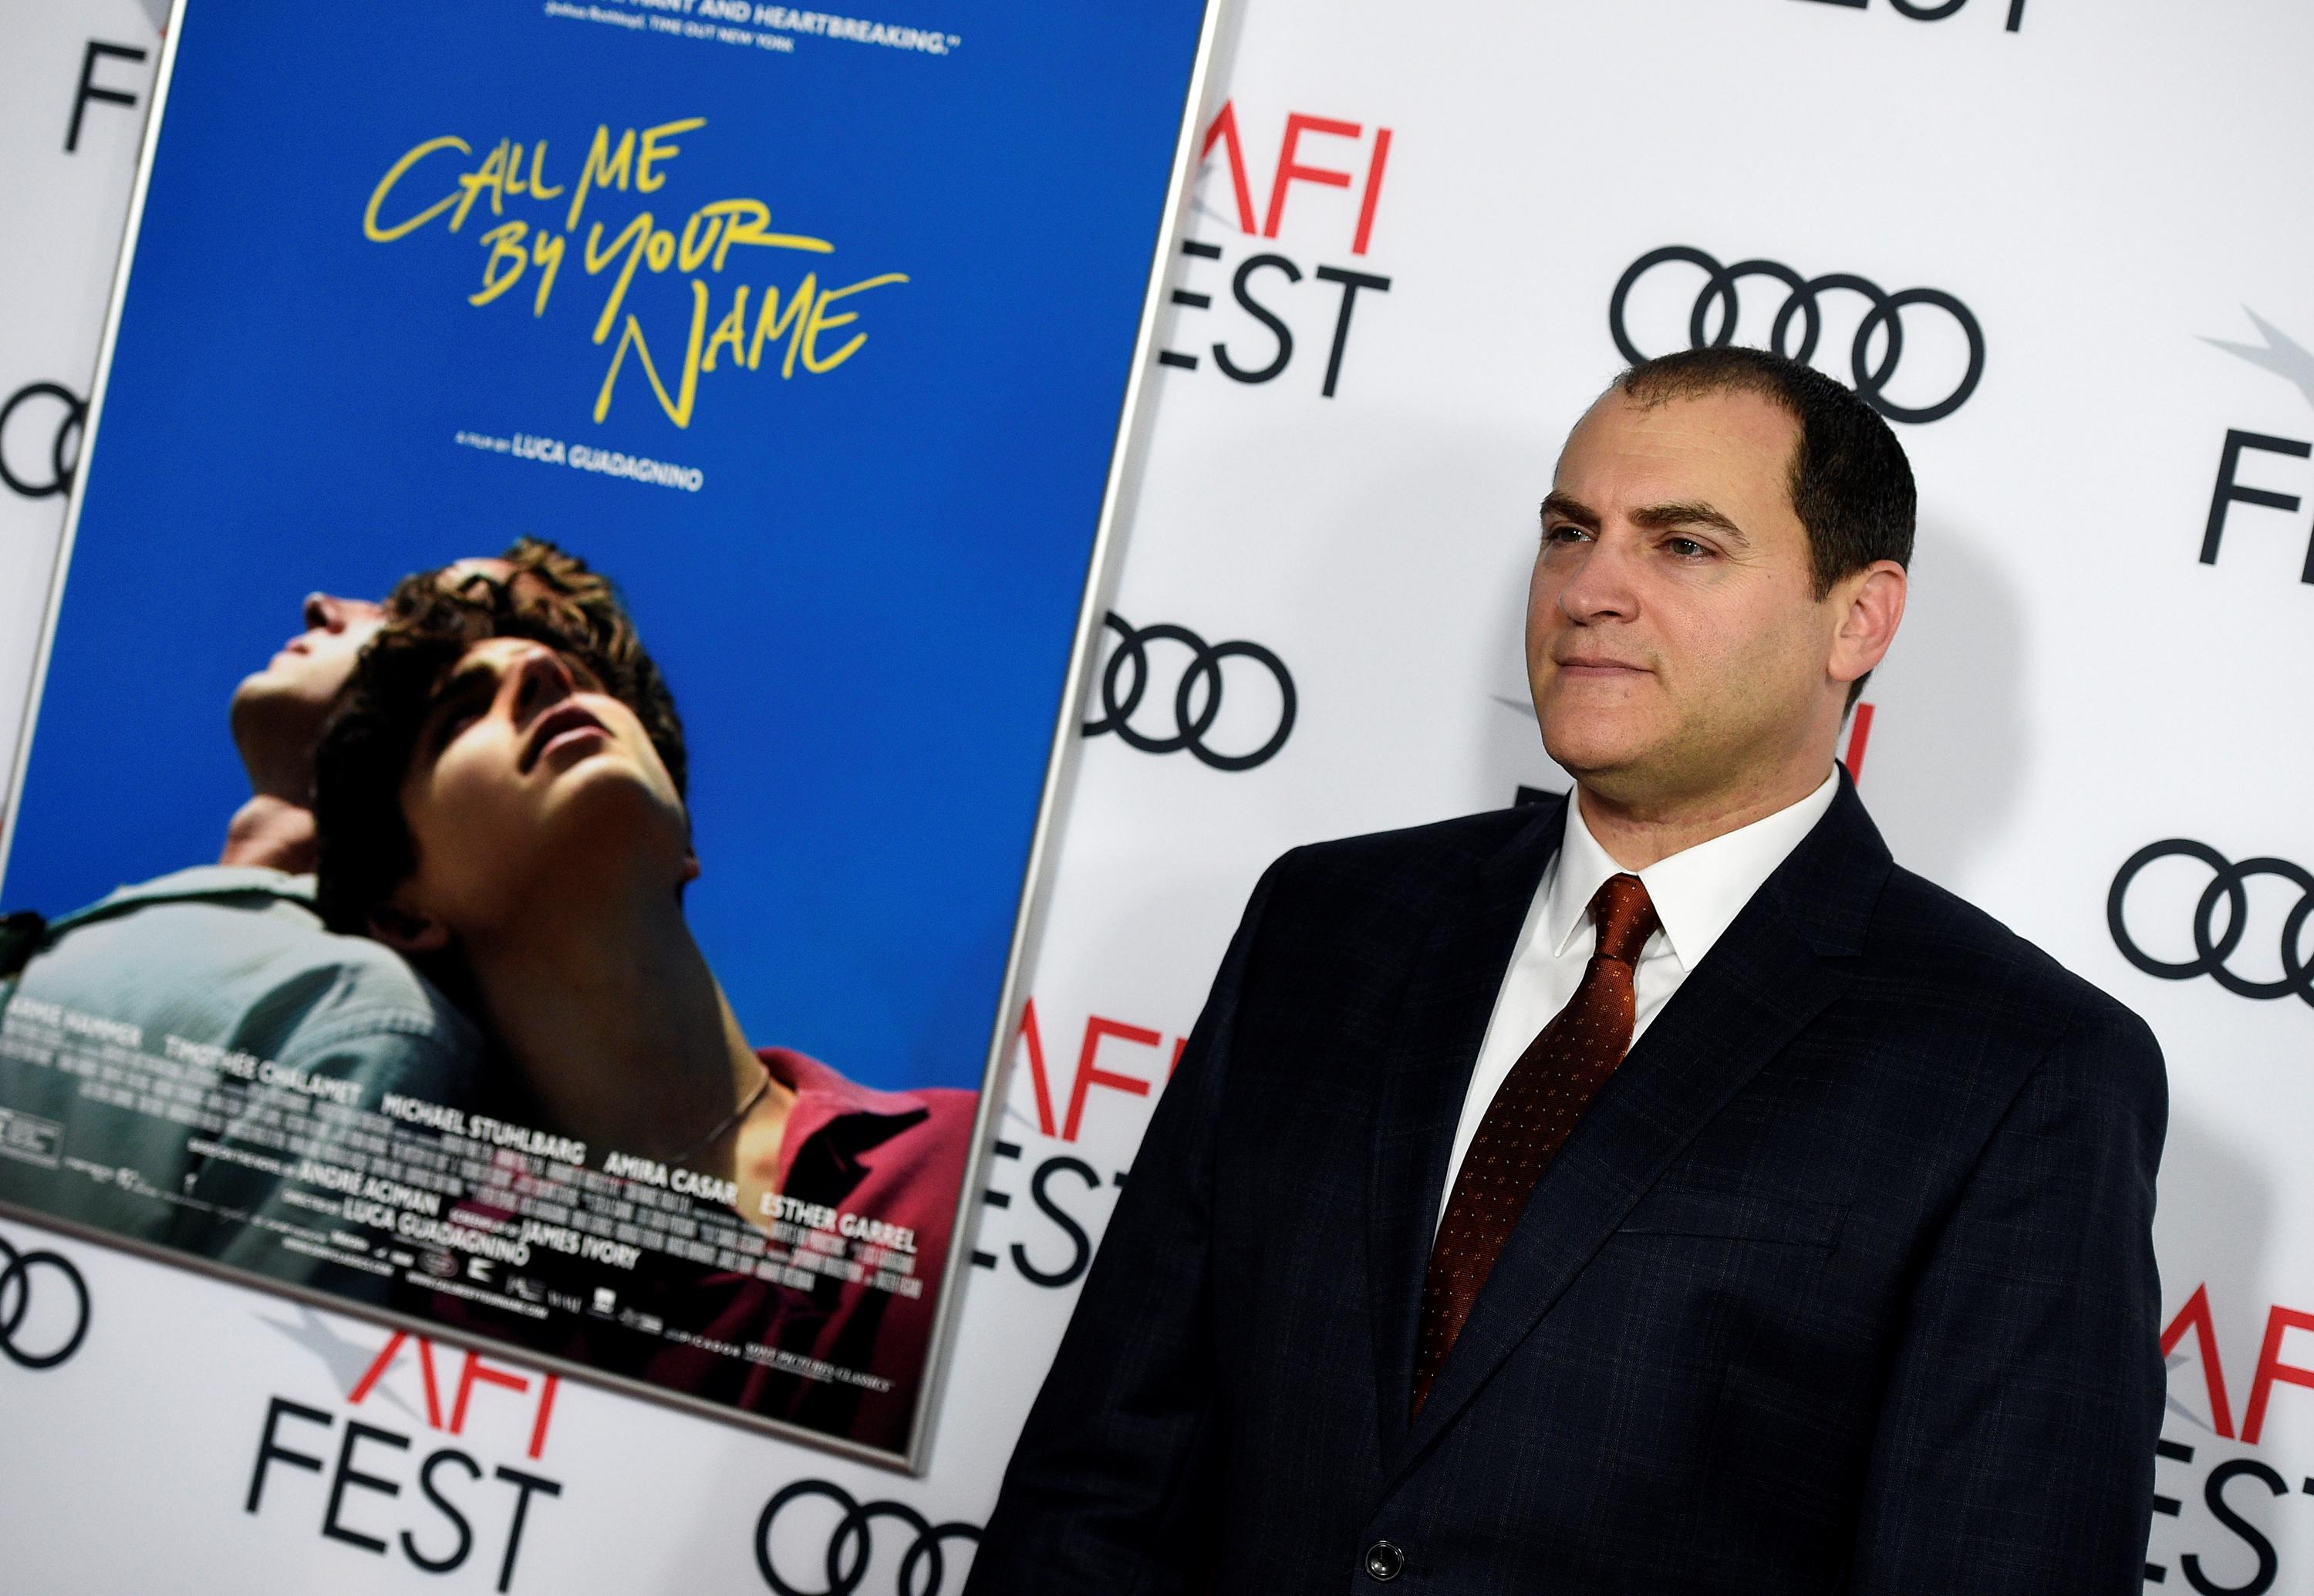 Cast member Michael Stuhlbarg attends the premiere of